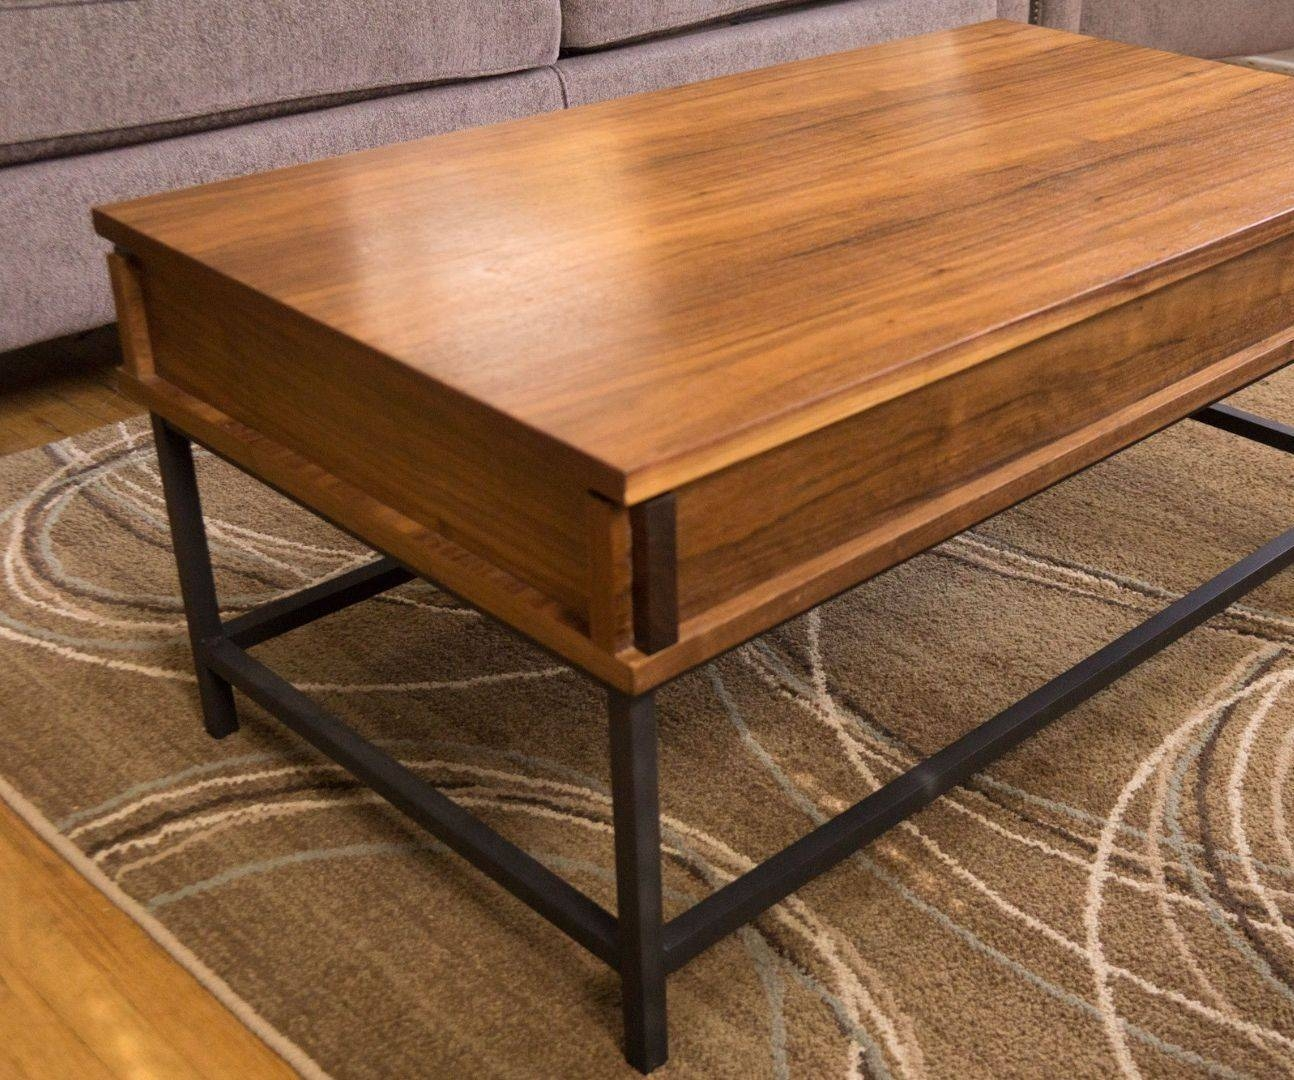 How To Make A Coffee Table With Lift Top: 18 Steps (With Pictures) Within Raise Up Coffee Tables (View 26 of 30)